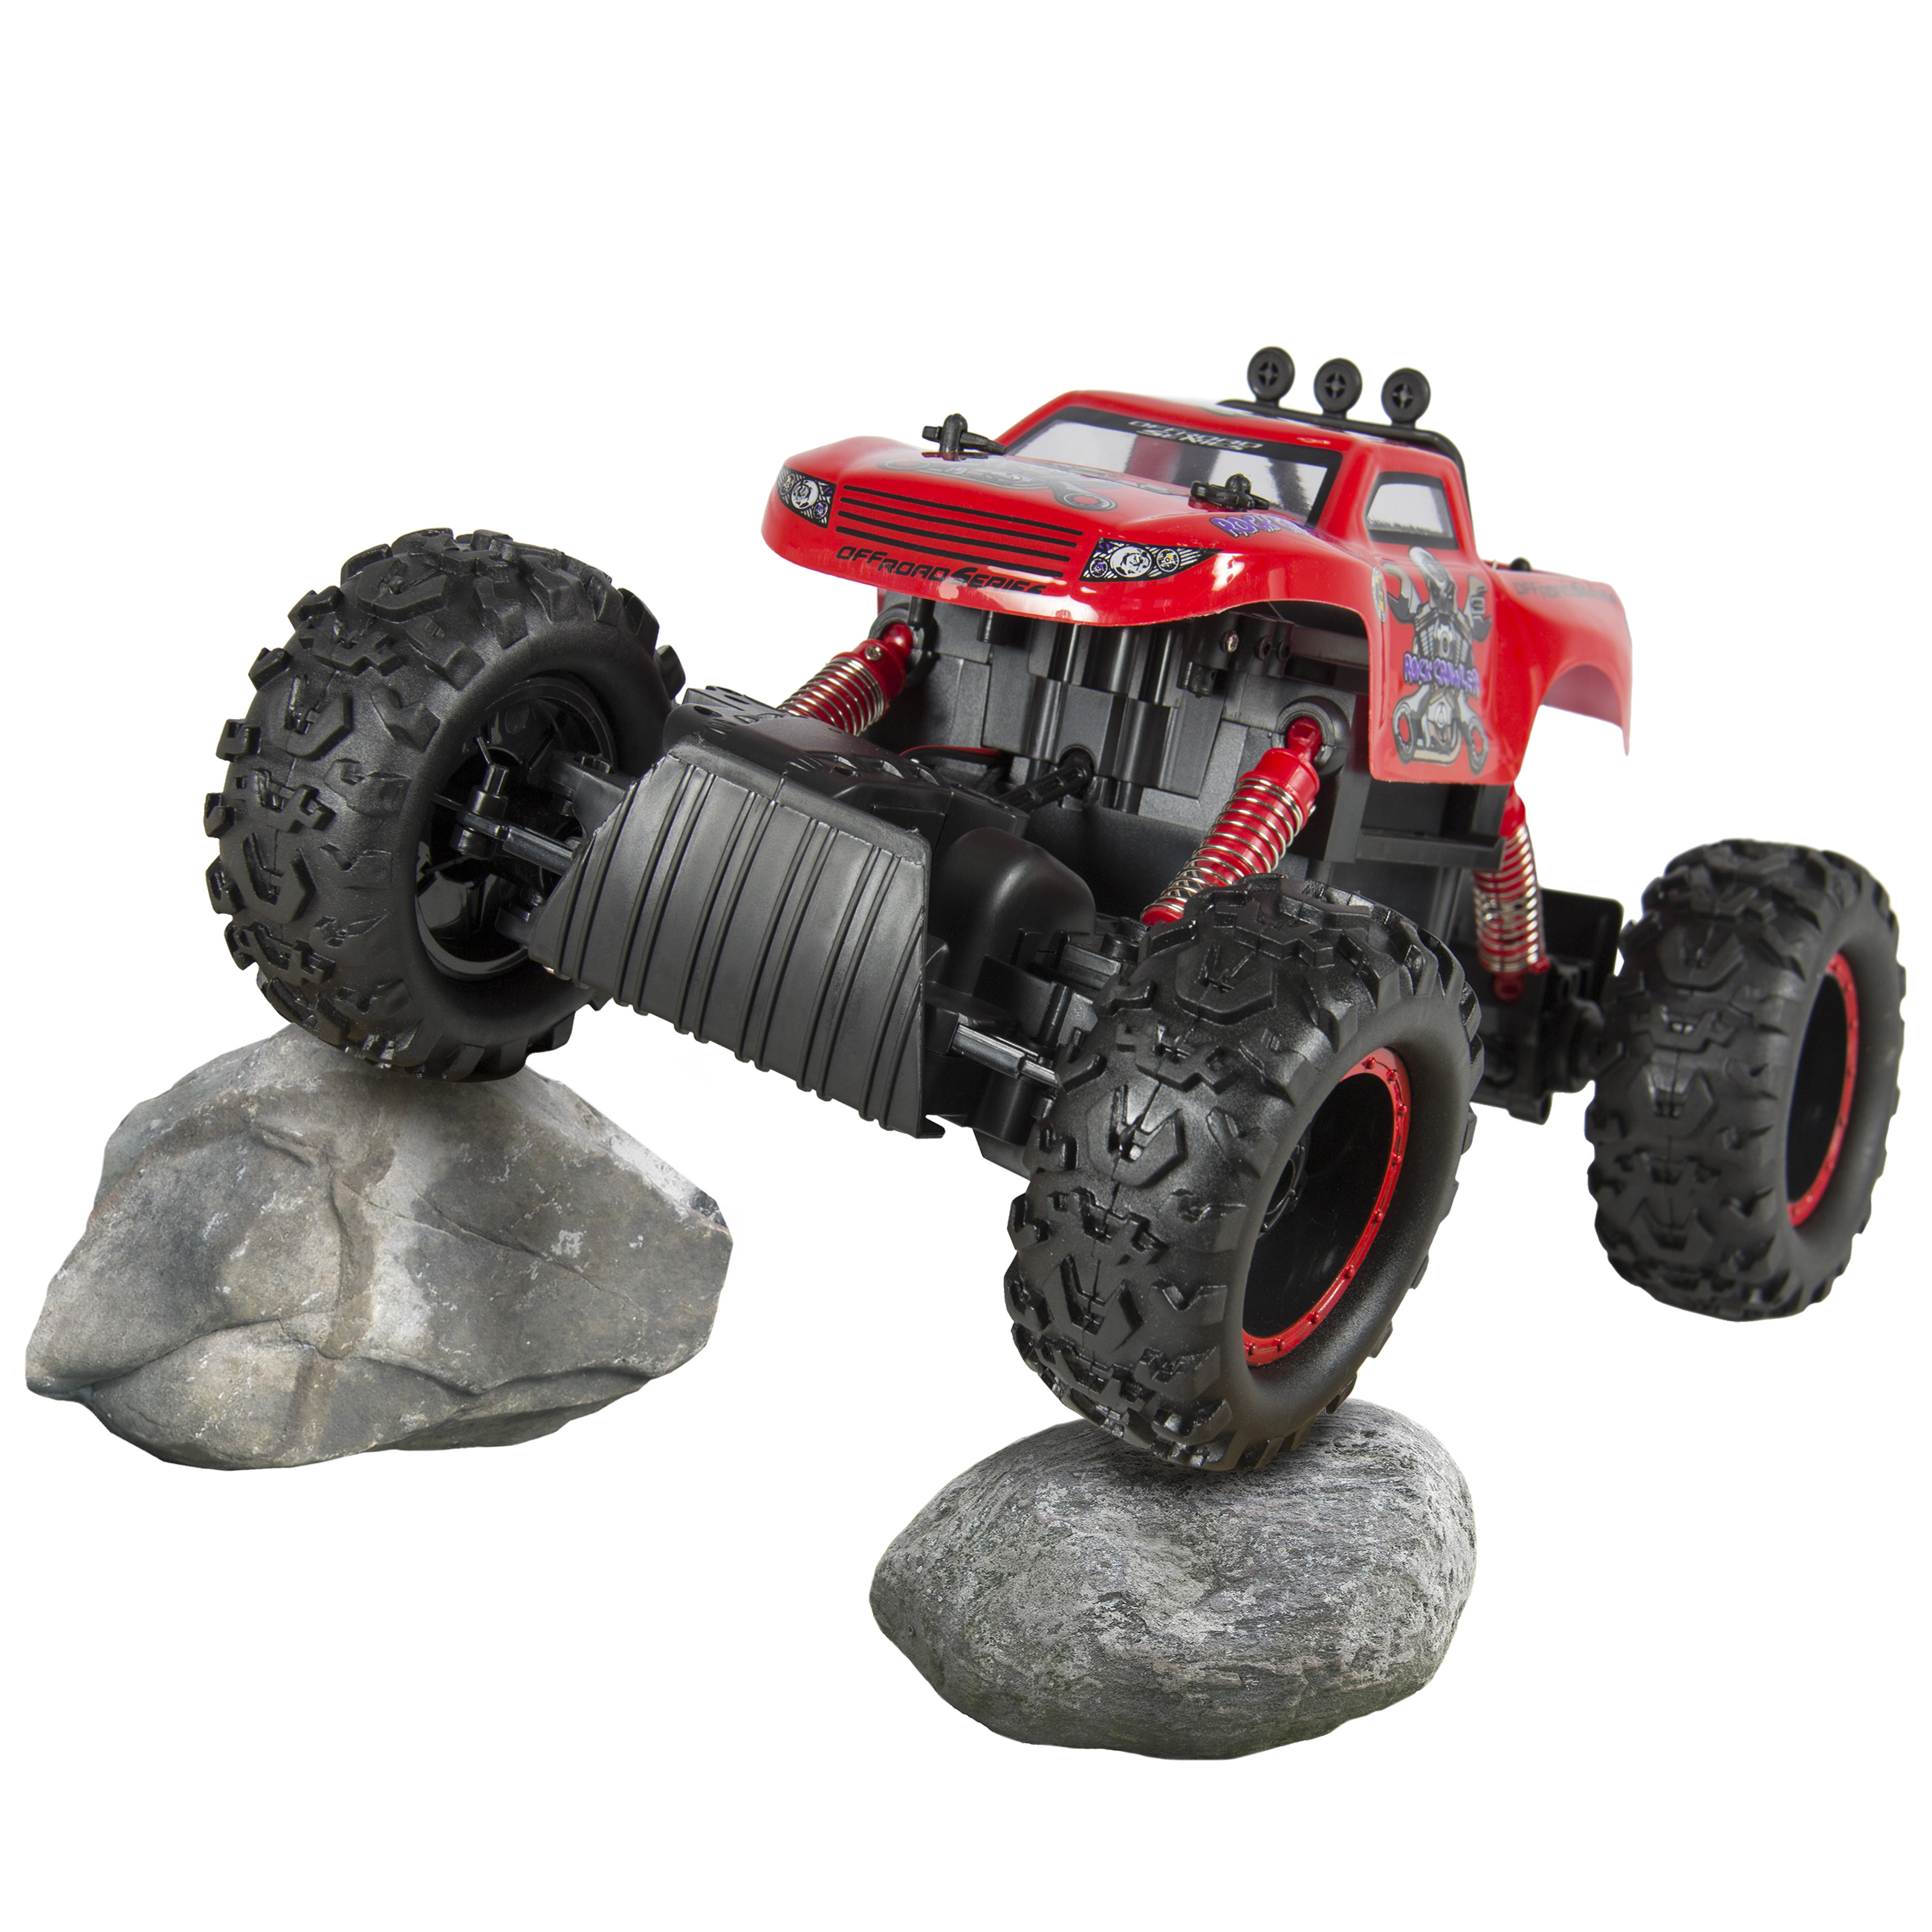 c1698302a9 Best Choice Products 4WD Powerful Remote Control Truck RC Rock Crawler   Monster  Wheels - Red